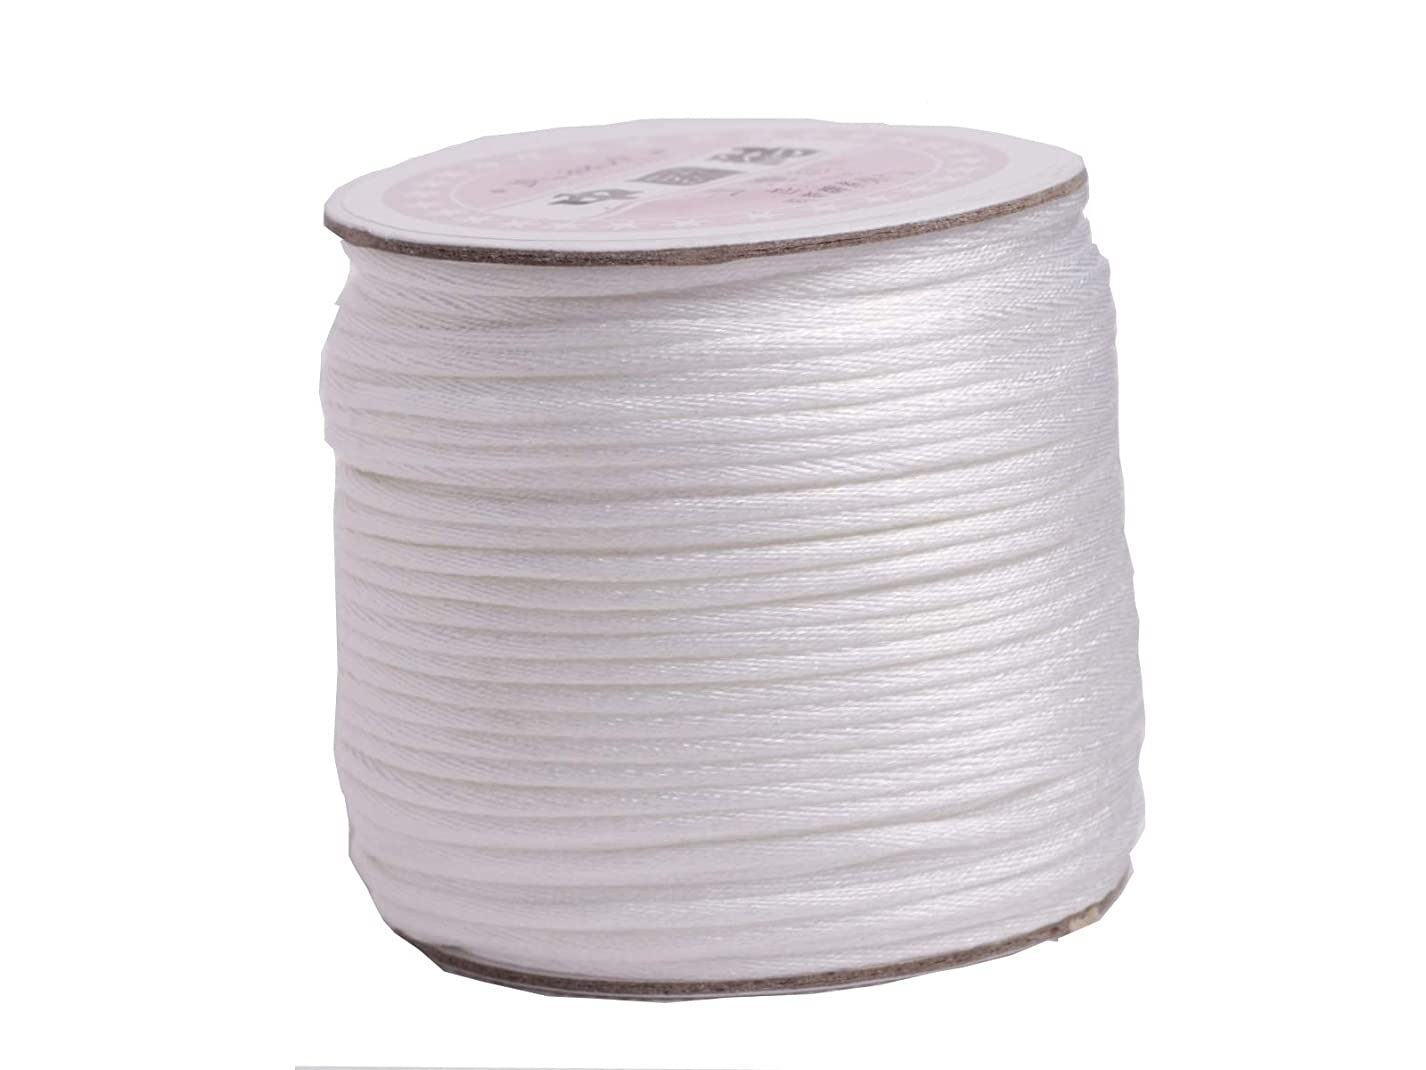 U PICK Wholesale Multi-colors 2 Roll 100 Yards 2.0mm Rattail Satin Silk Cord Chinese Knot Beading Cord (02 White) fcy495317640962